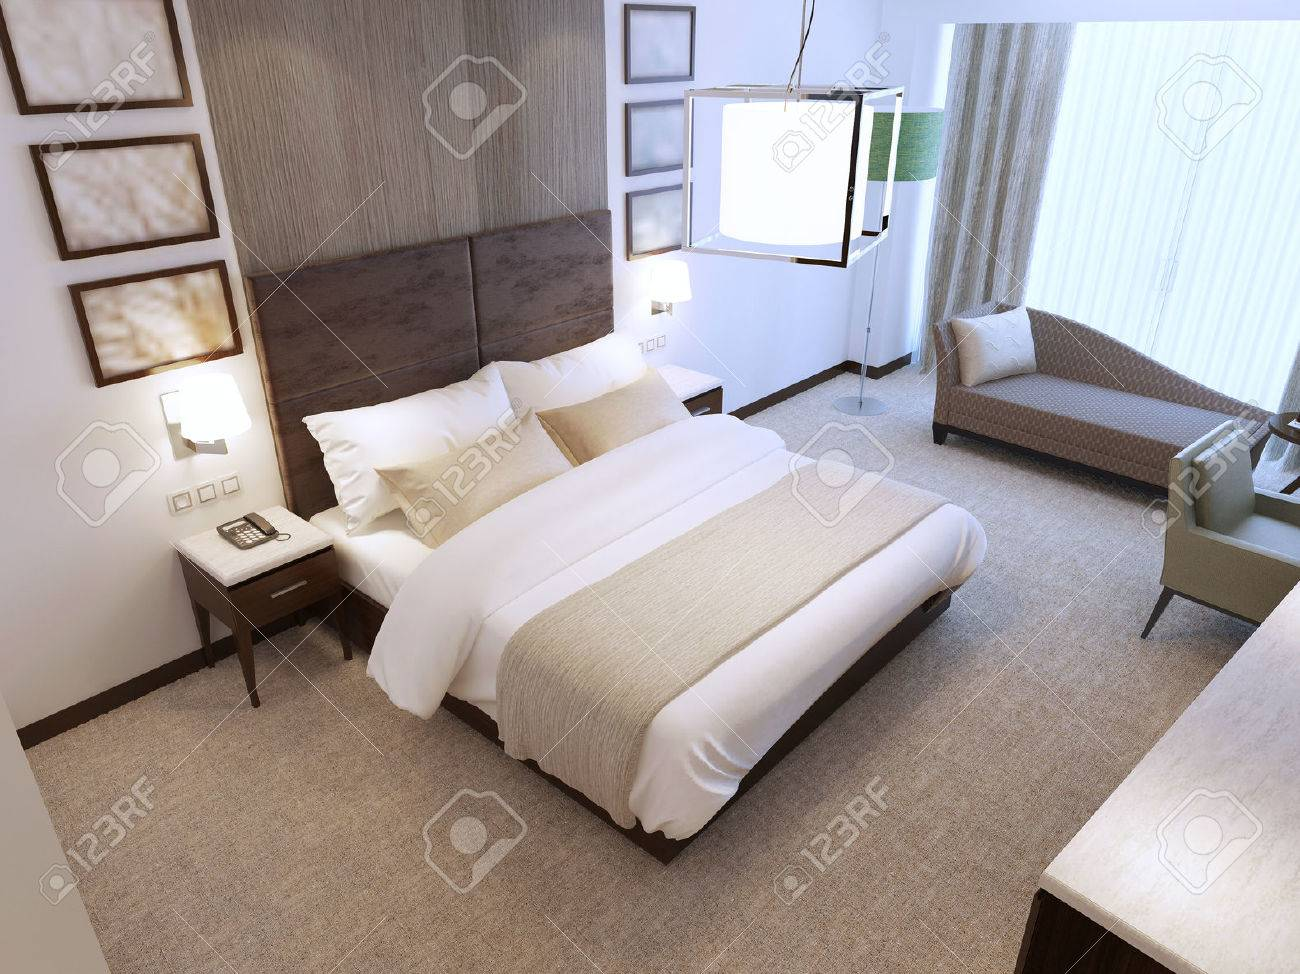 Modern Bedroom In Daylight With Included Lighting Minimalist Stock Photo Picture And Royalty Free Image Image 47621210,Colours That Go With Purple In A Bedroom